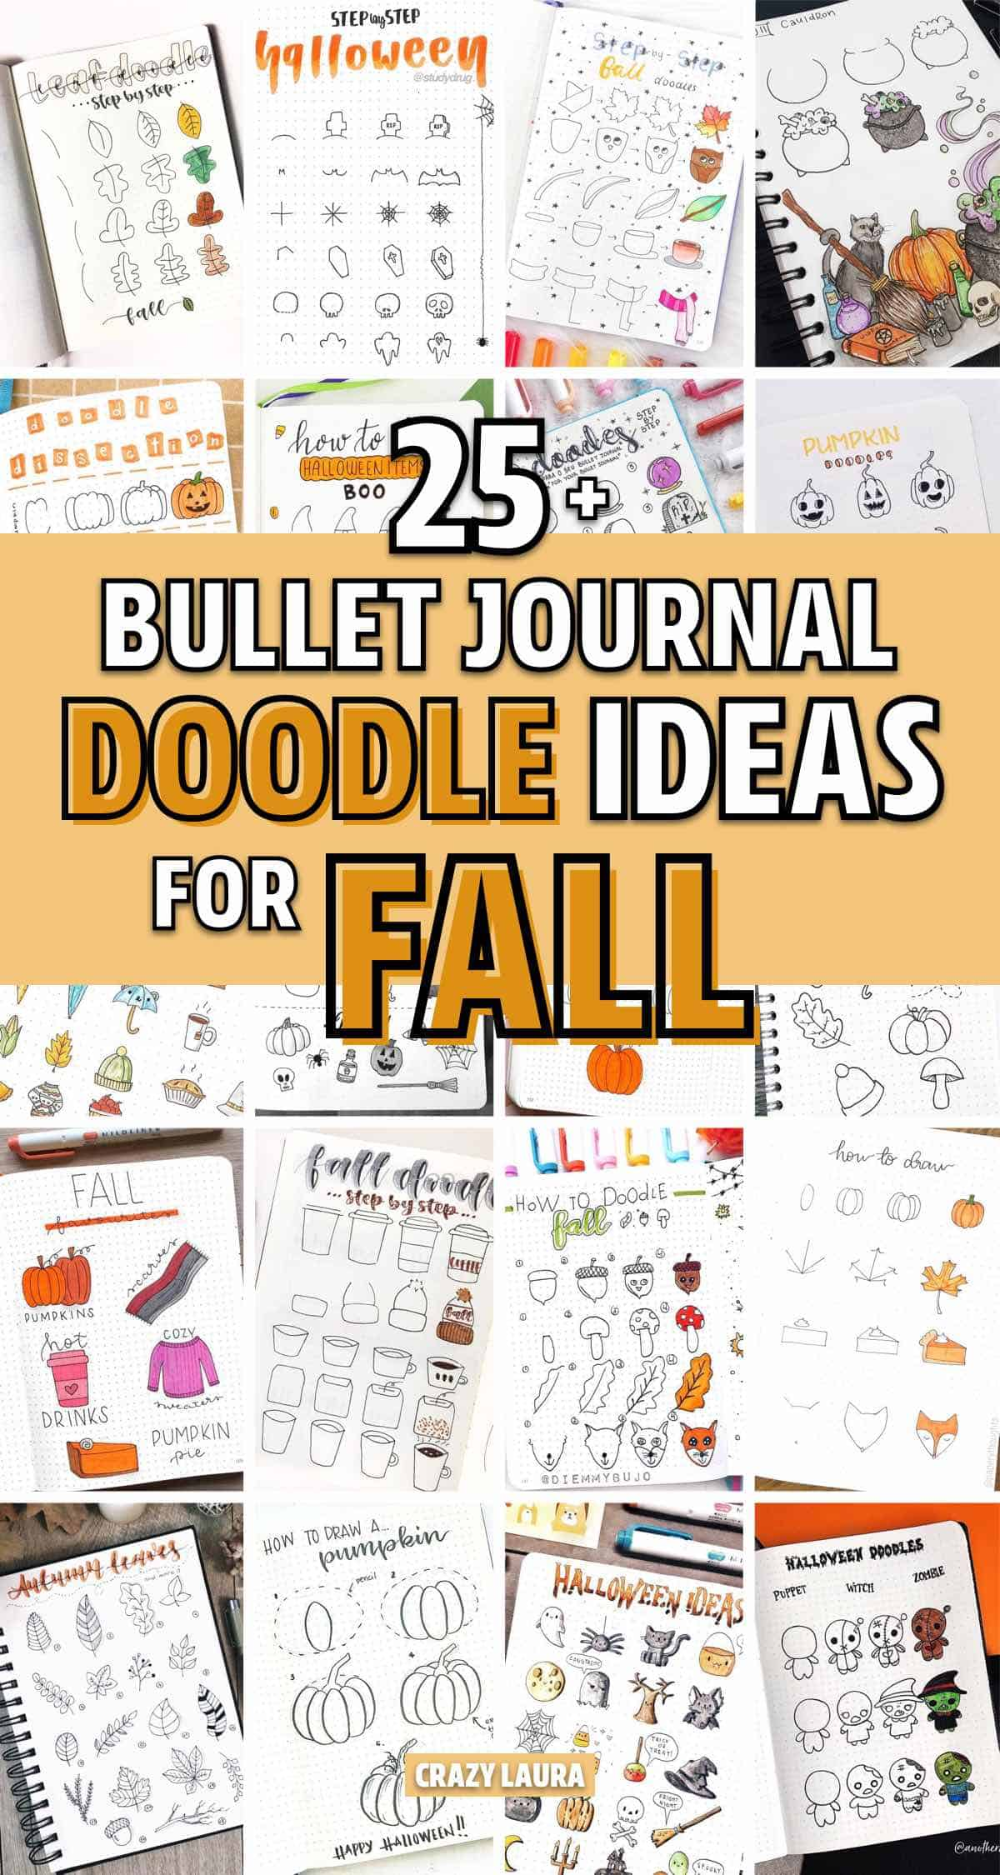 Best Bullet Journal Doodle Ideas For Halloween & Fall 2020